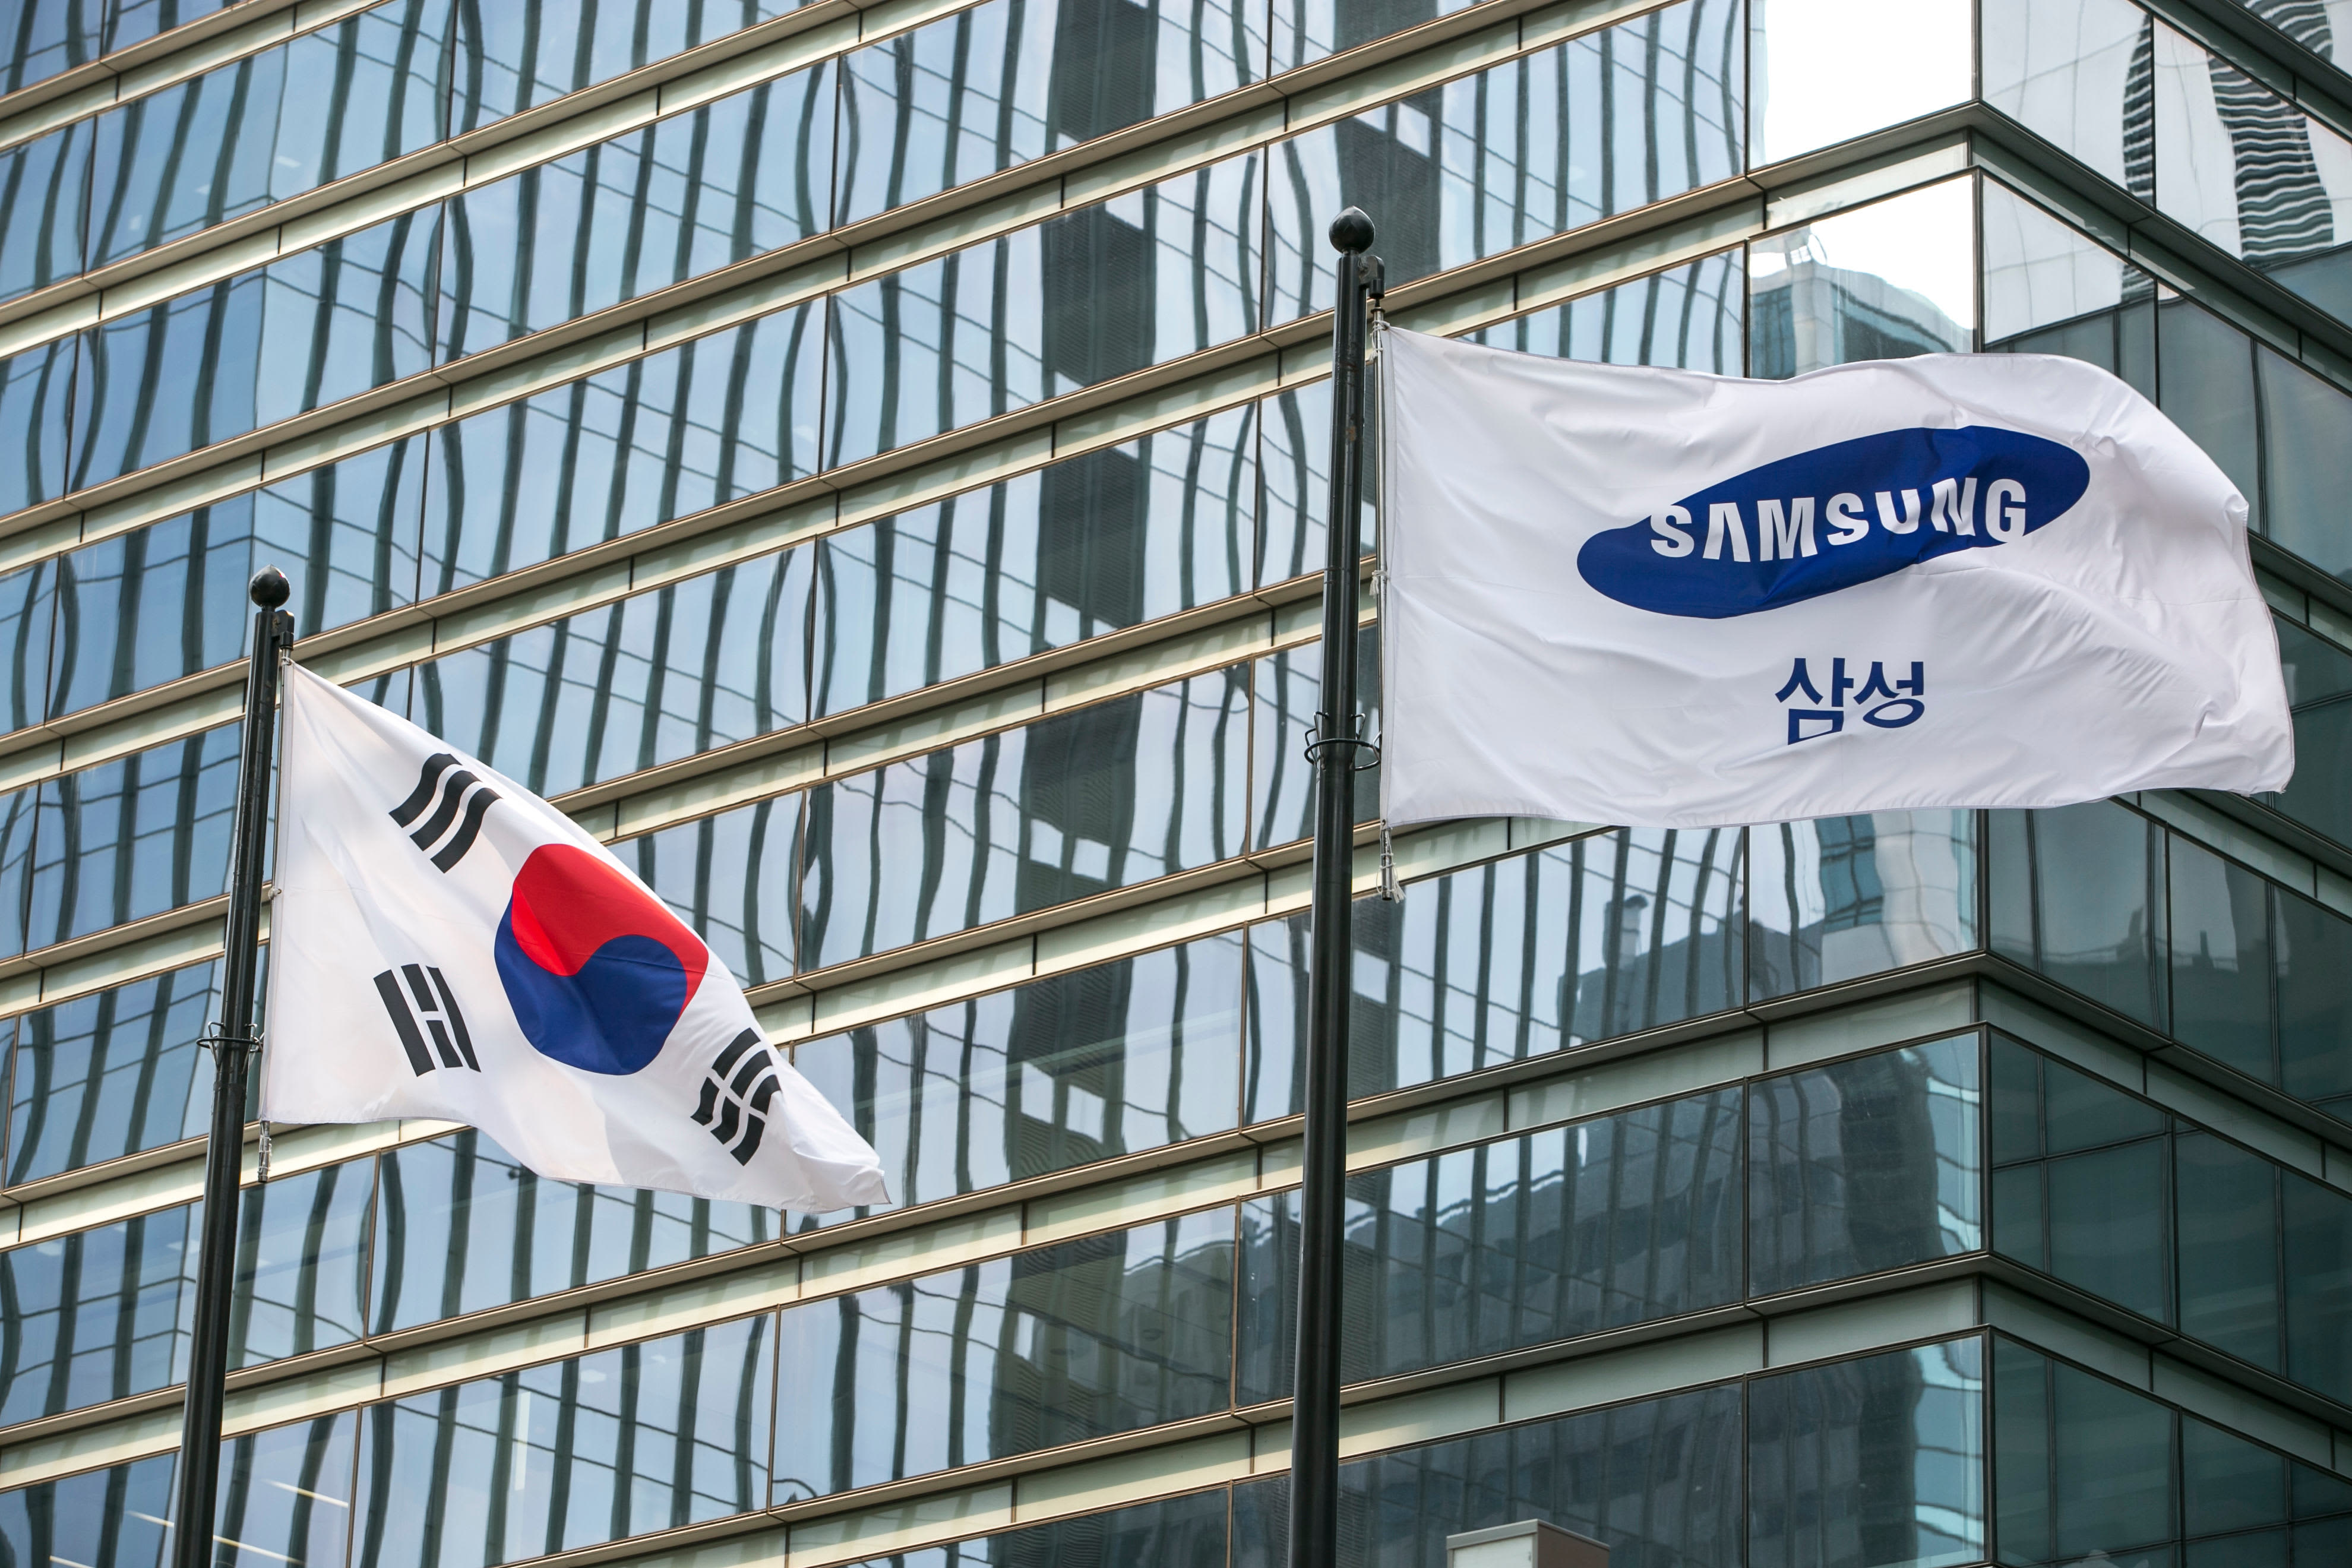 Samsung Display to invest $11 billion in facilities, research by 2025